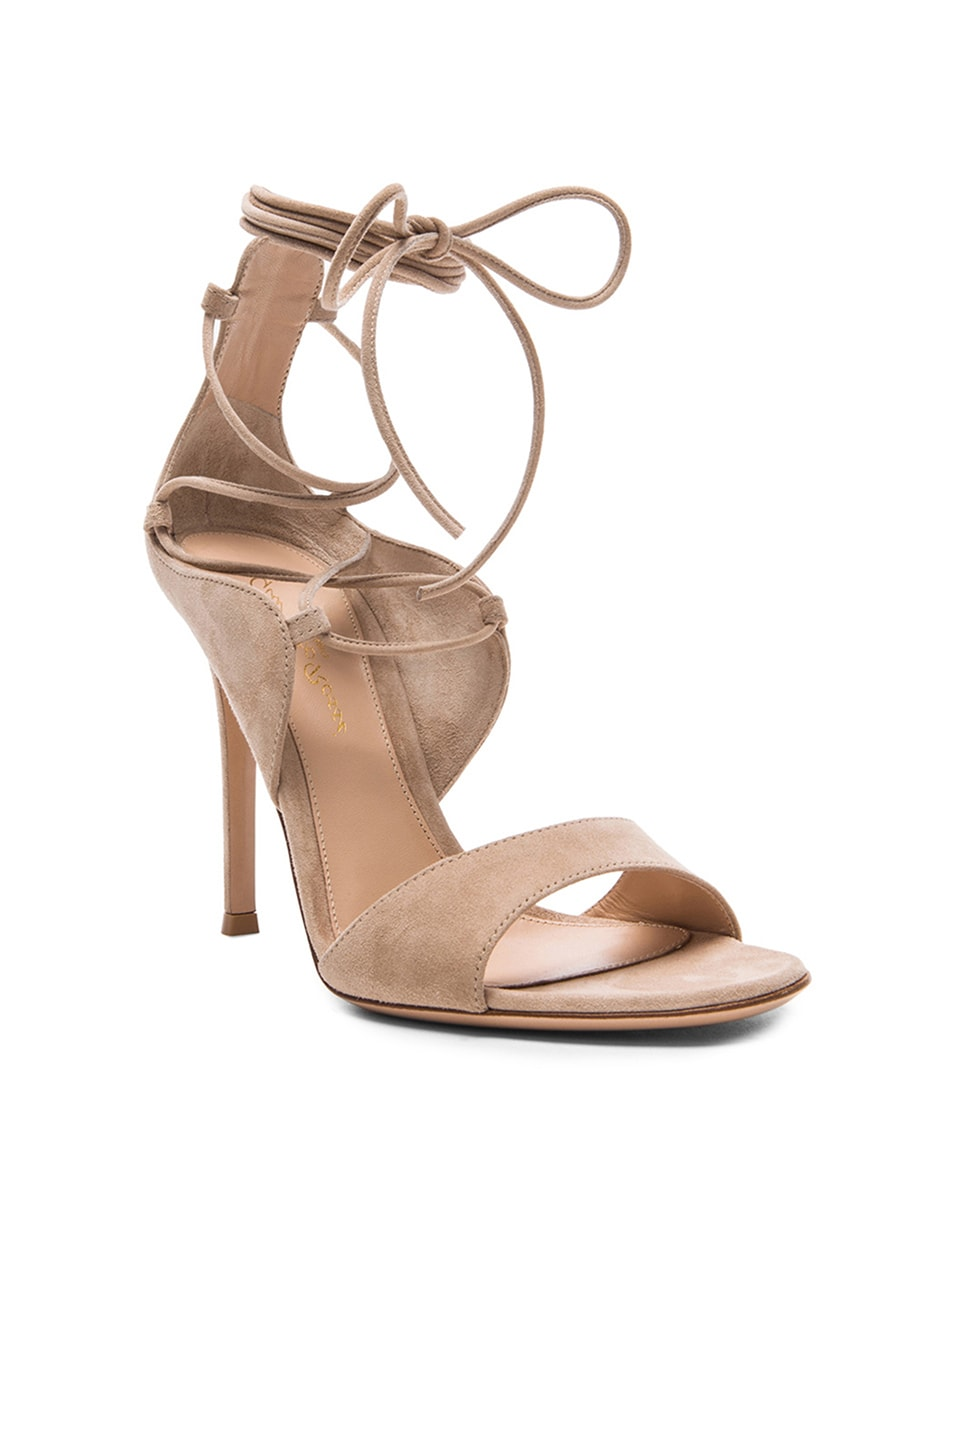 Image 2 of Gianvito Rossi Lace Up Heels in Rope Suede